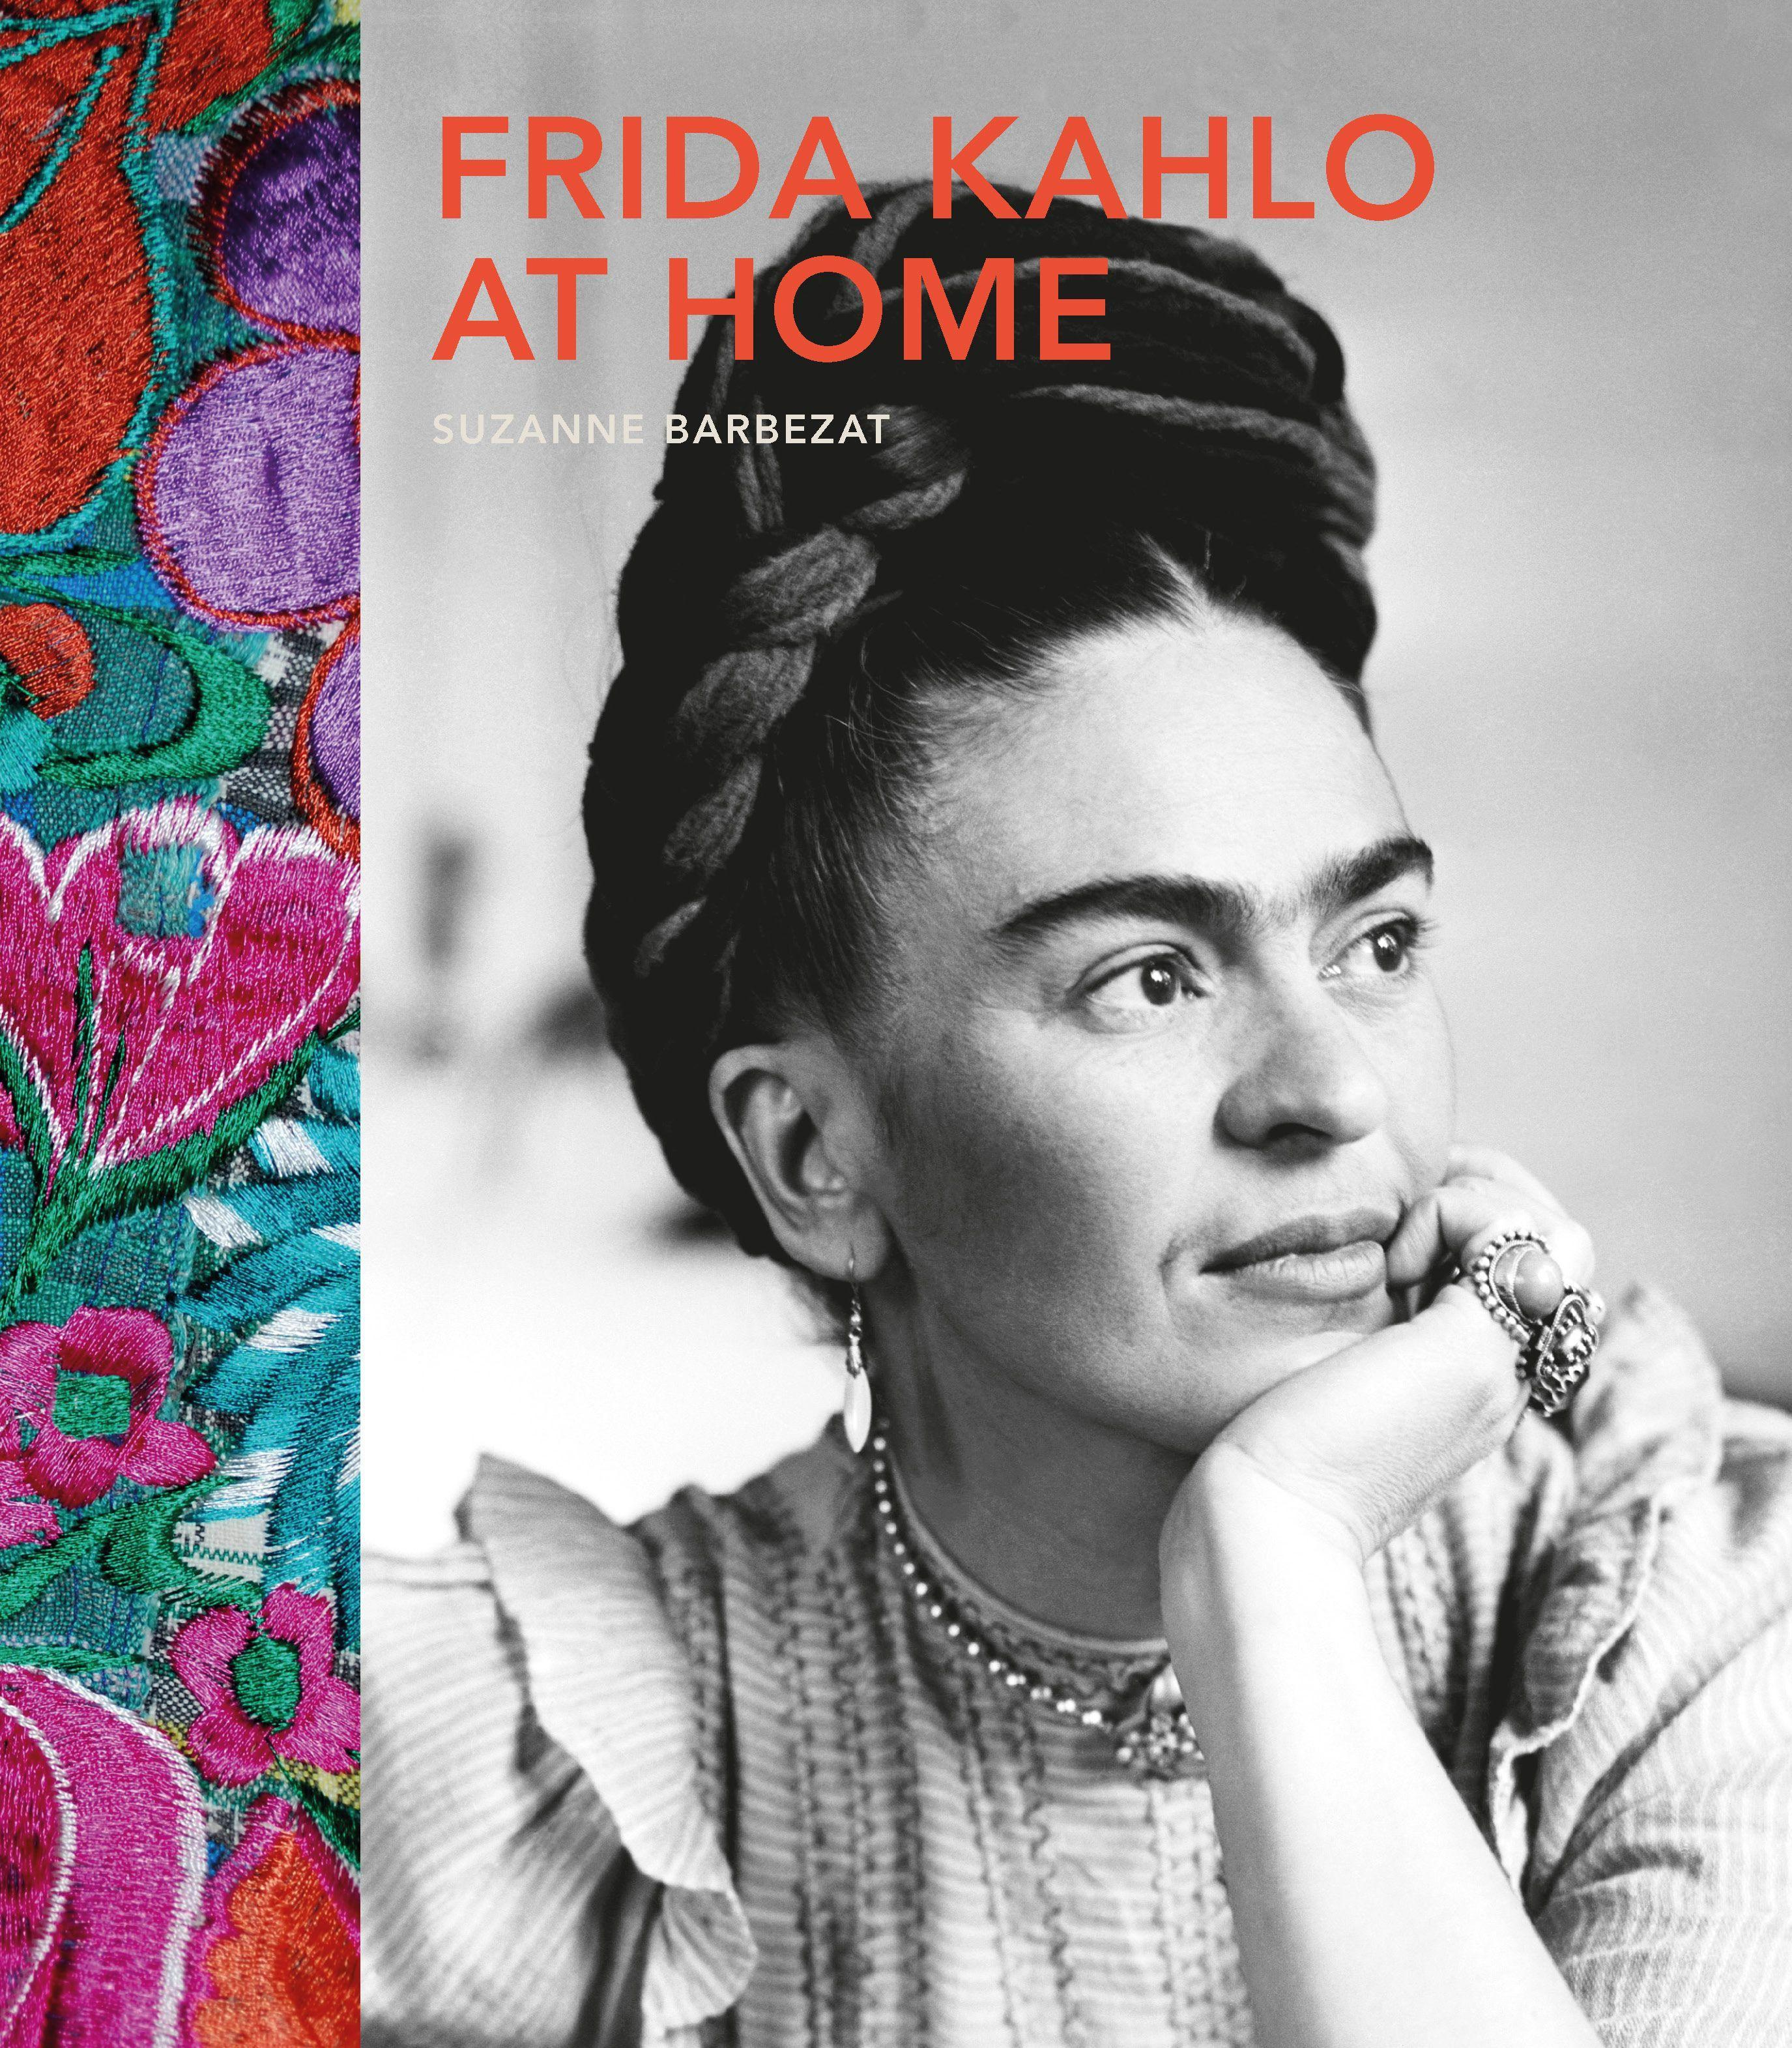 Frida Kahlo at Home  Suzanne Barbezat  Buch  Englisch  2016 - Barbezat, Suzanne